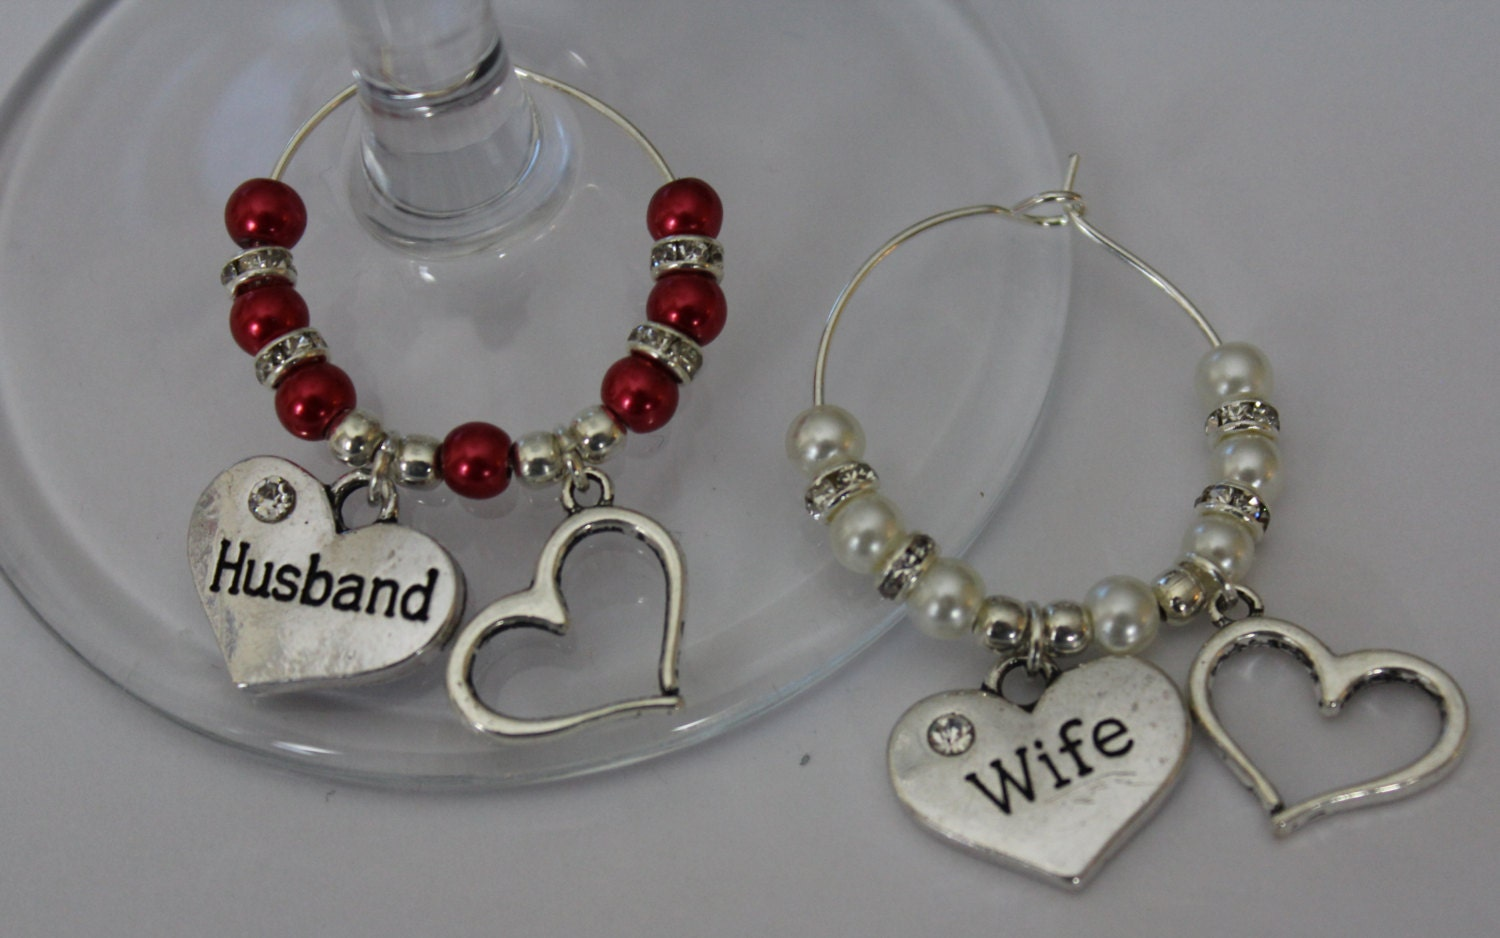 Wedding Gift Ideas Australia: Husband & Wife Wine Glass Charms Wedding Gift Valentines